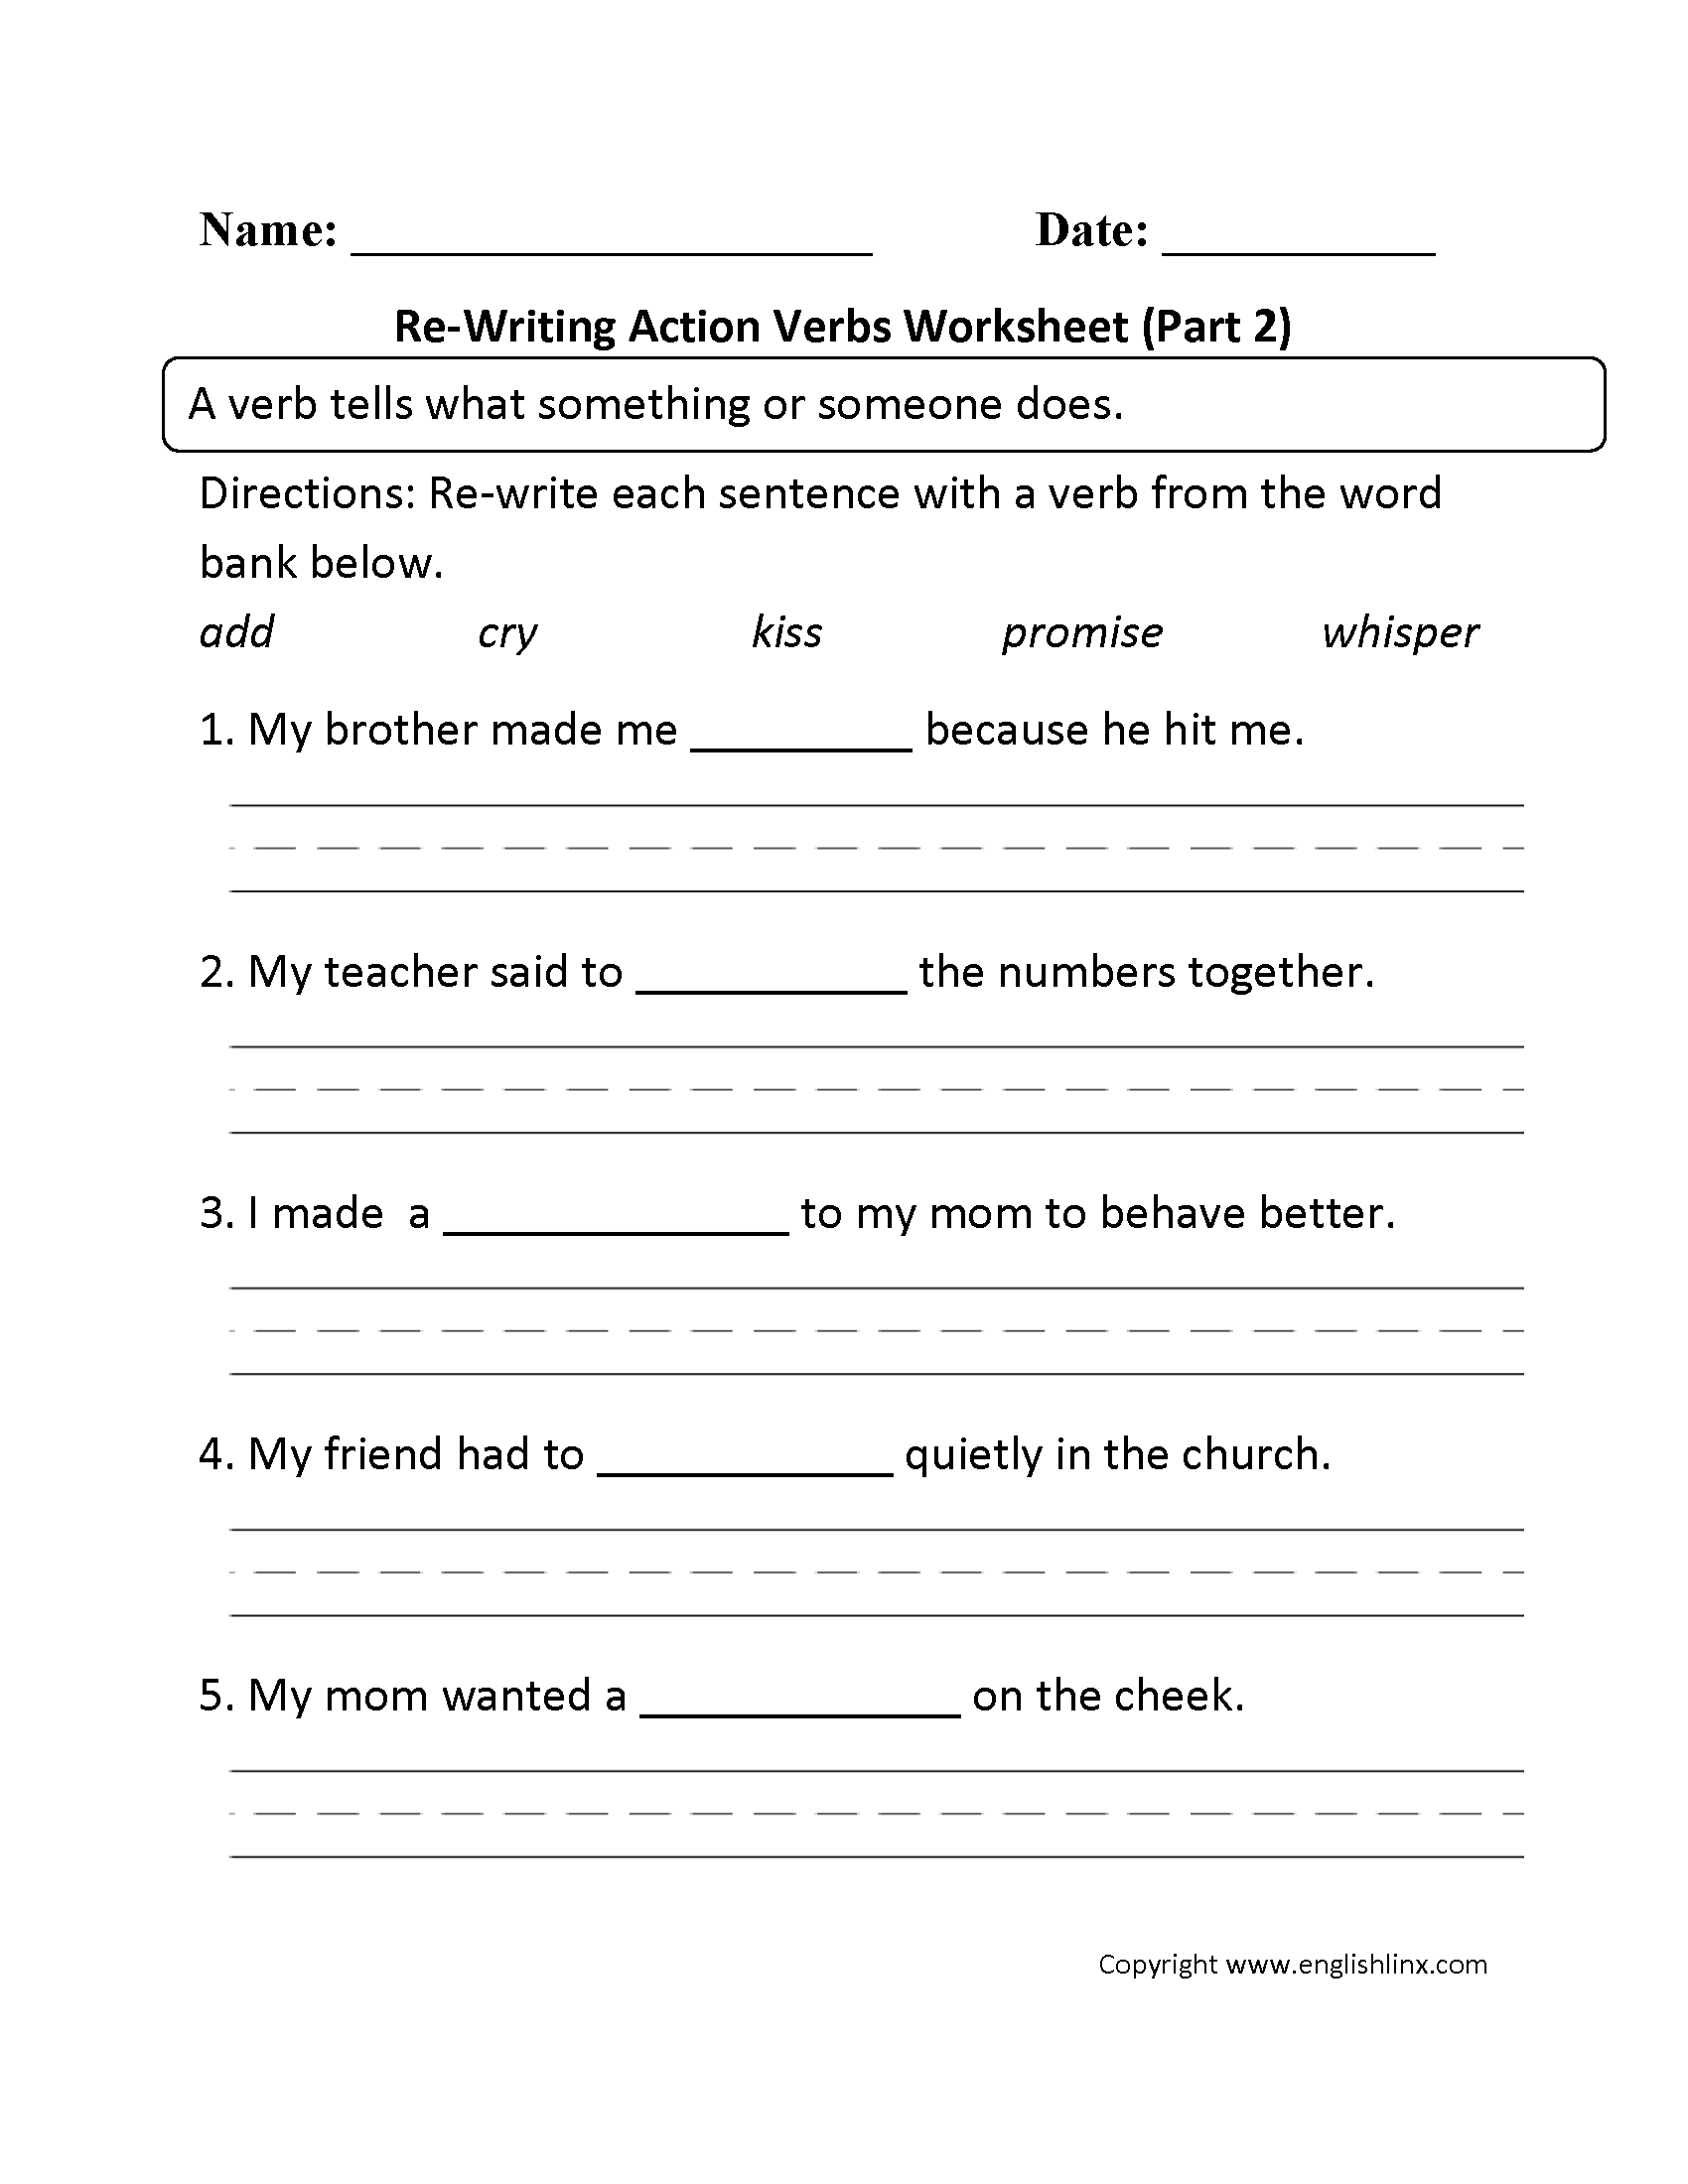 Worksheets Verbs Worksheet Grade 2 verbs worksheets action worksheet part 2